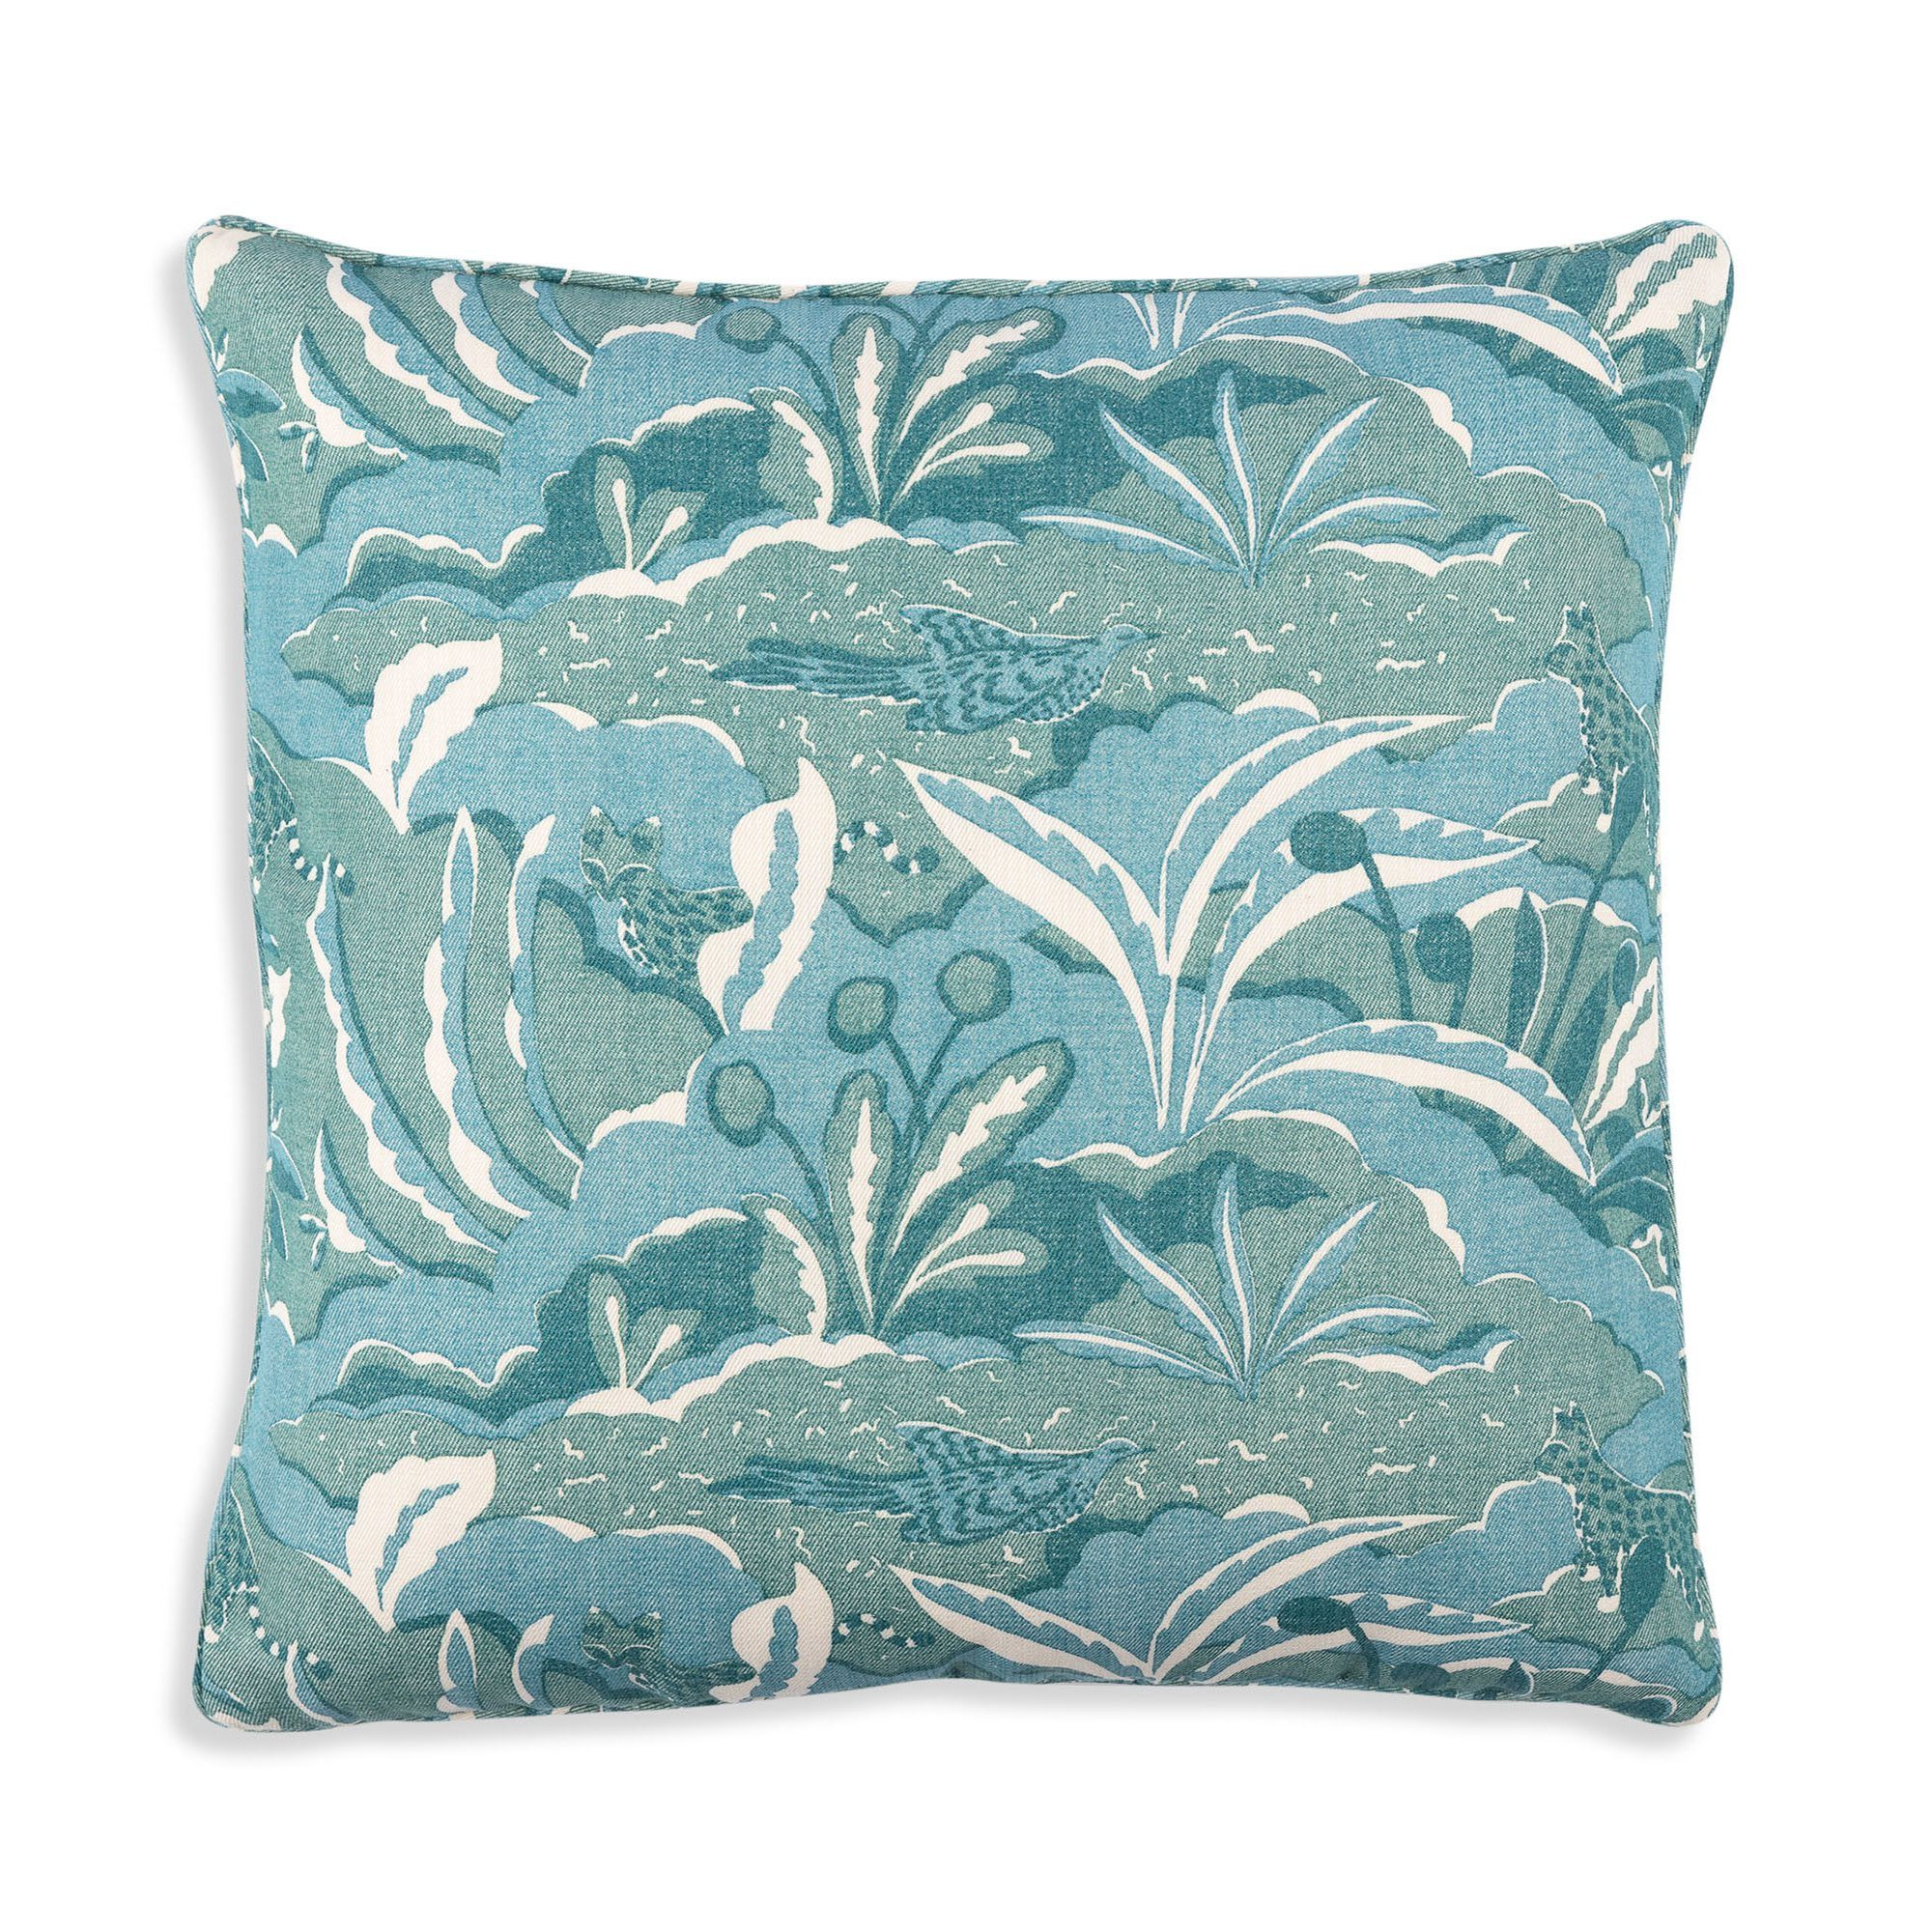 Small Square Cushion in Green Pangea